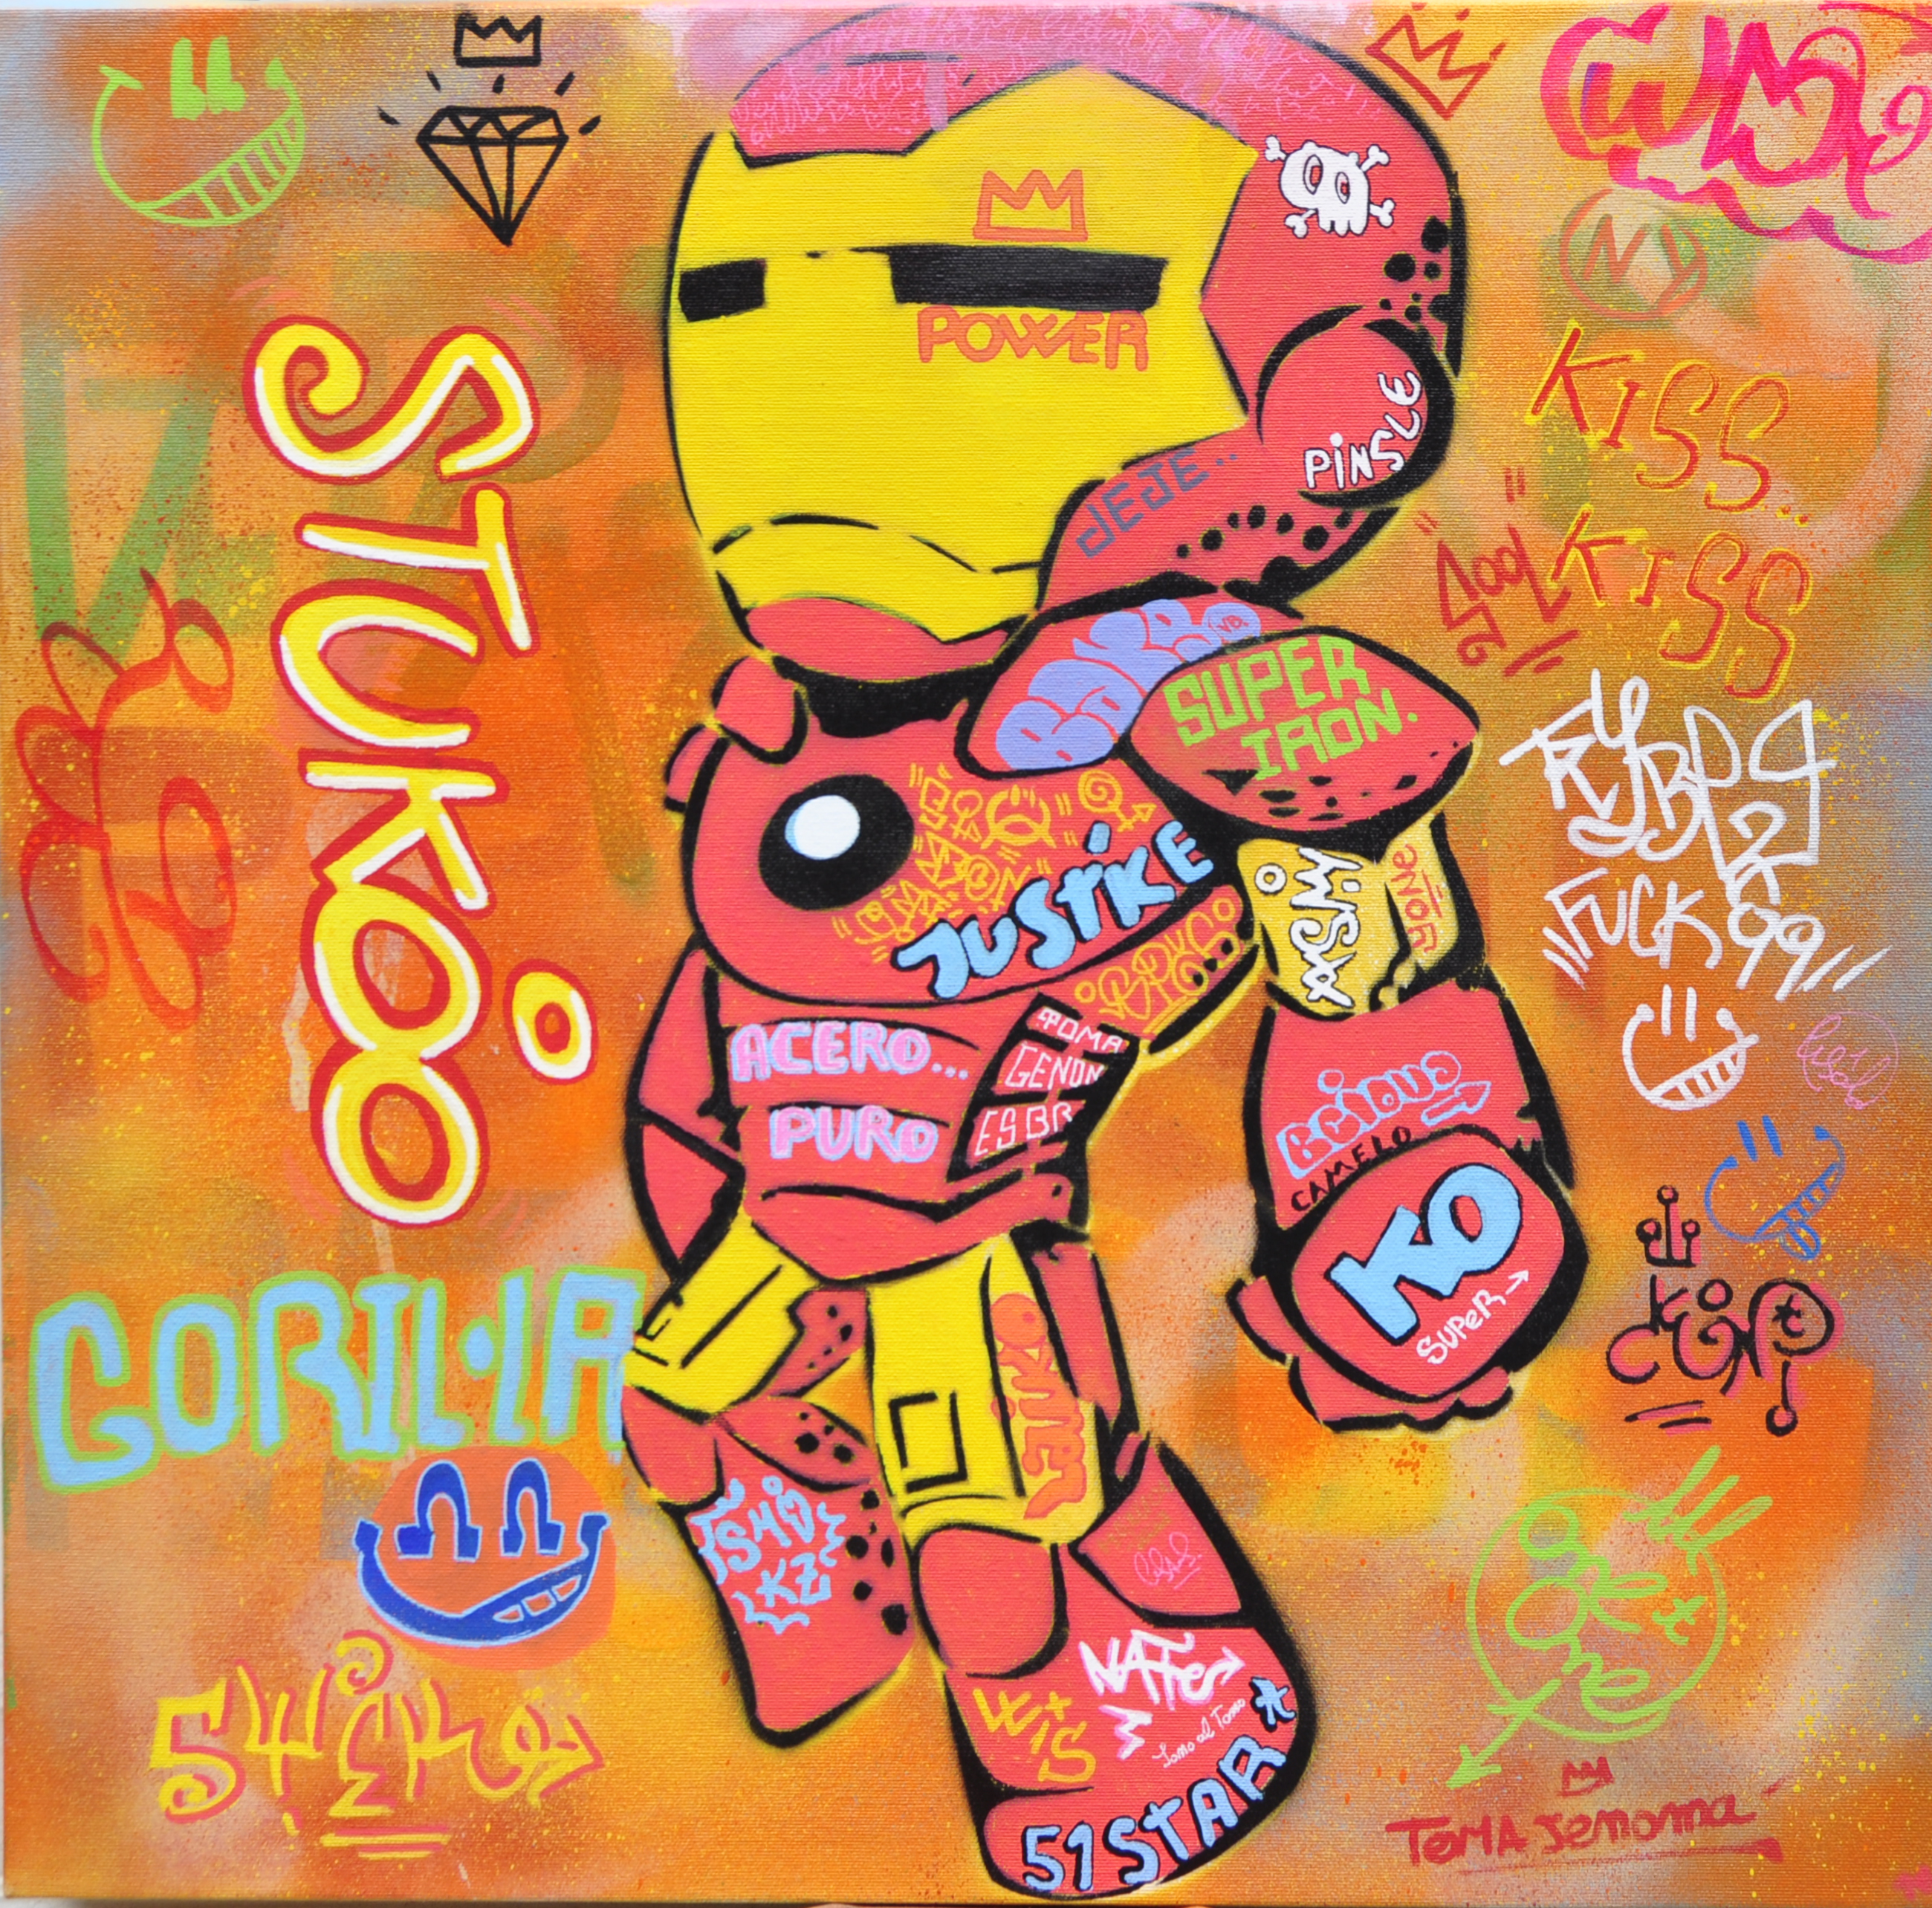 50x50cm canvas graffiti